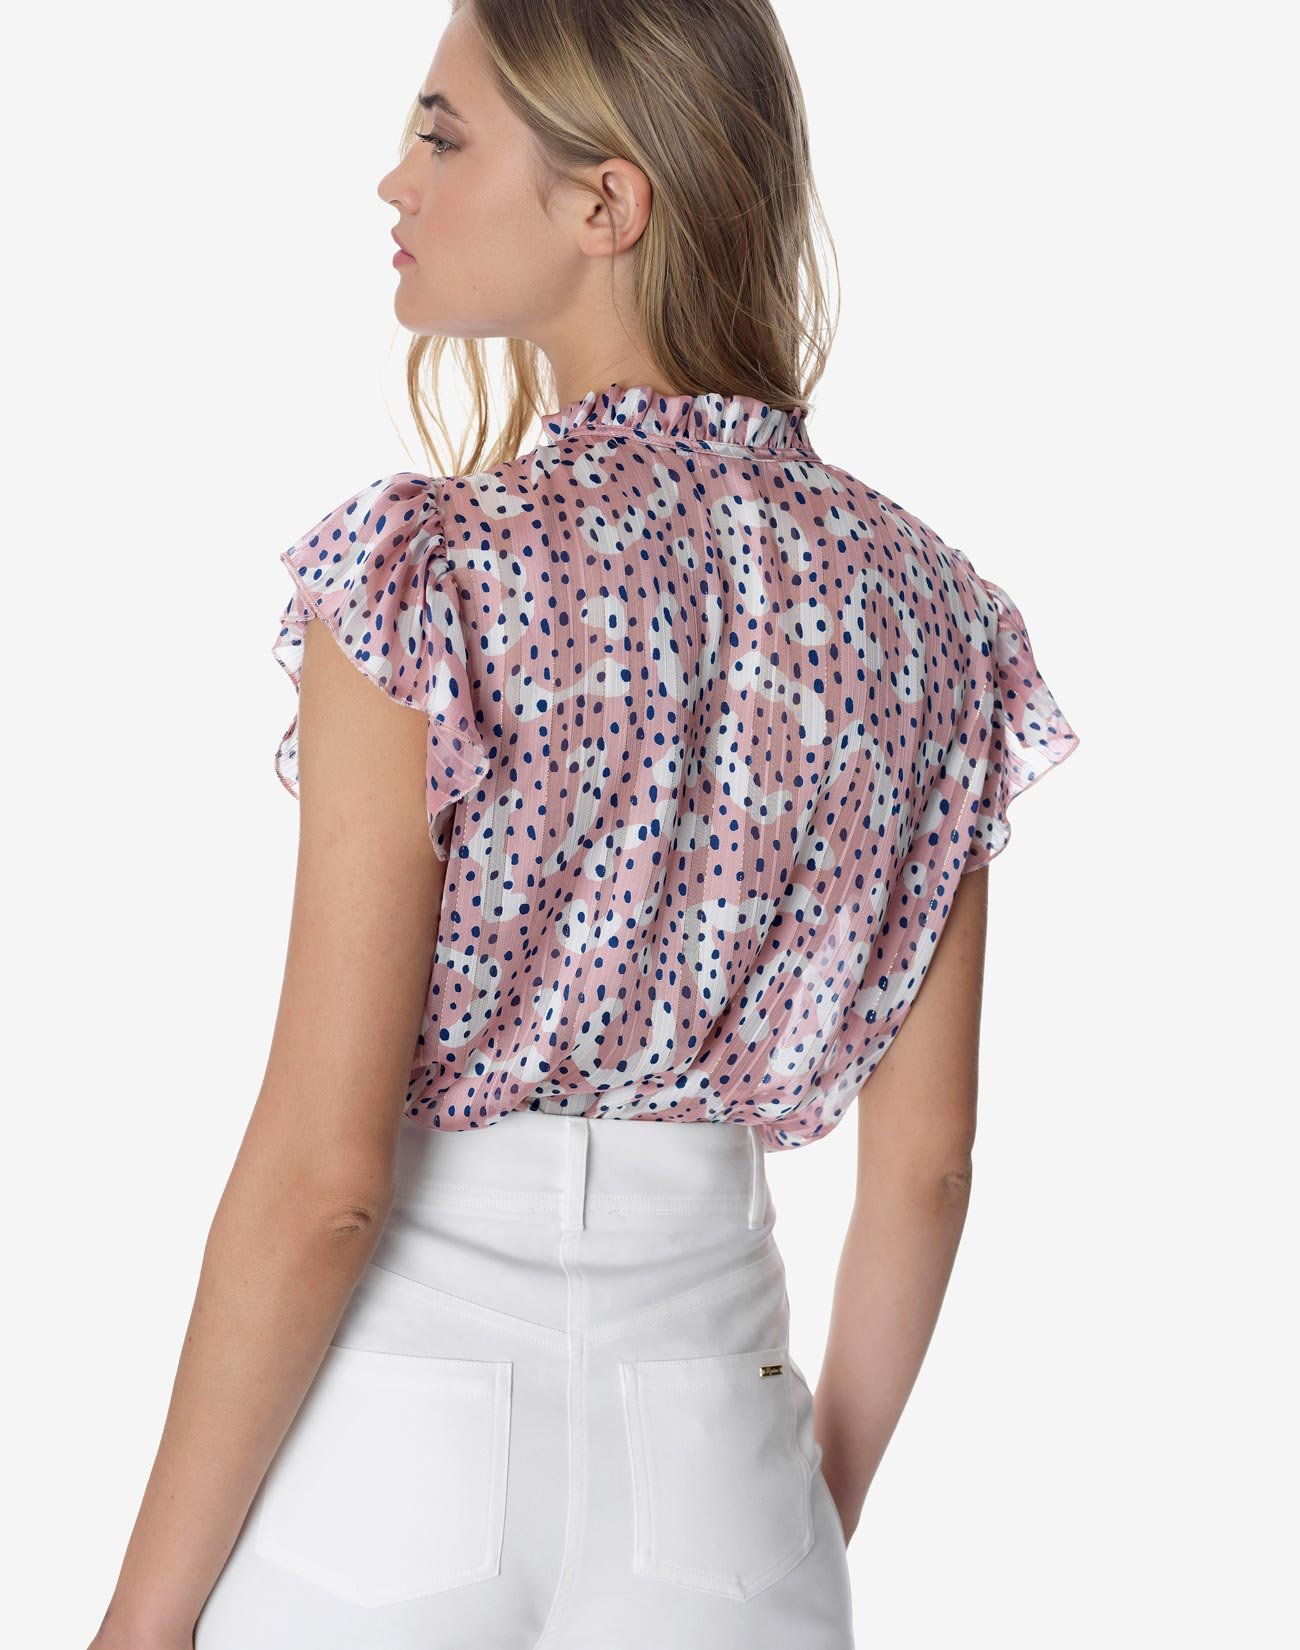 Printed top with high collar